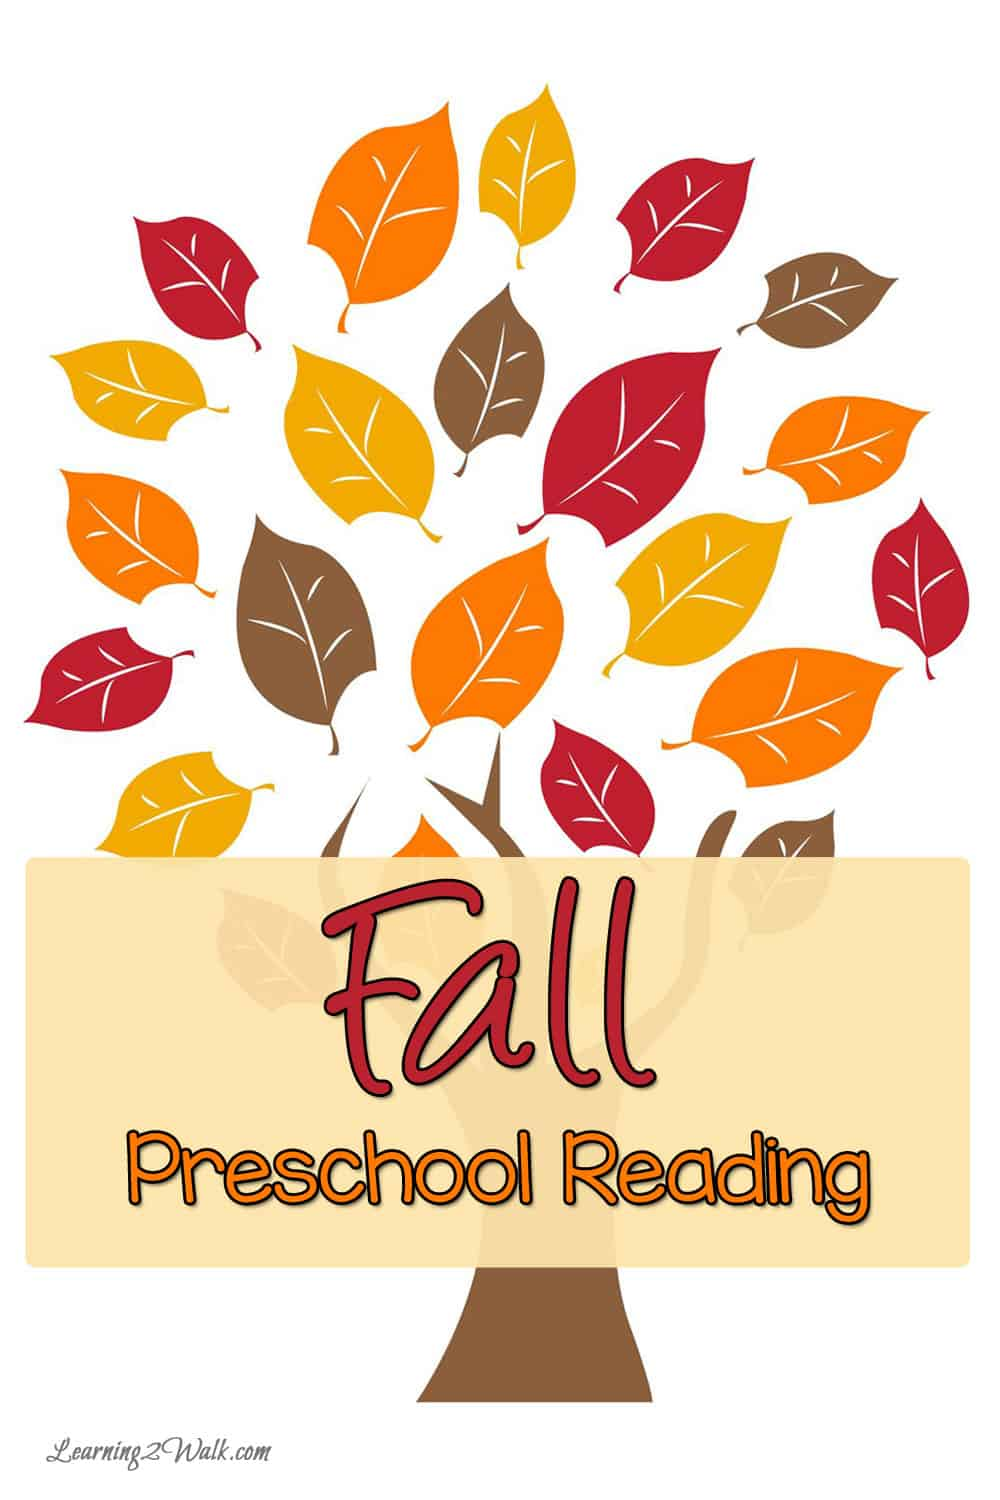 Welcome fall with these 5 books for your preschool reading time.